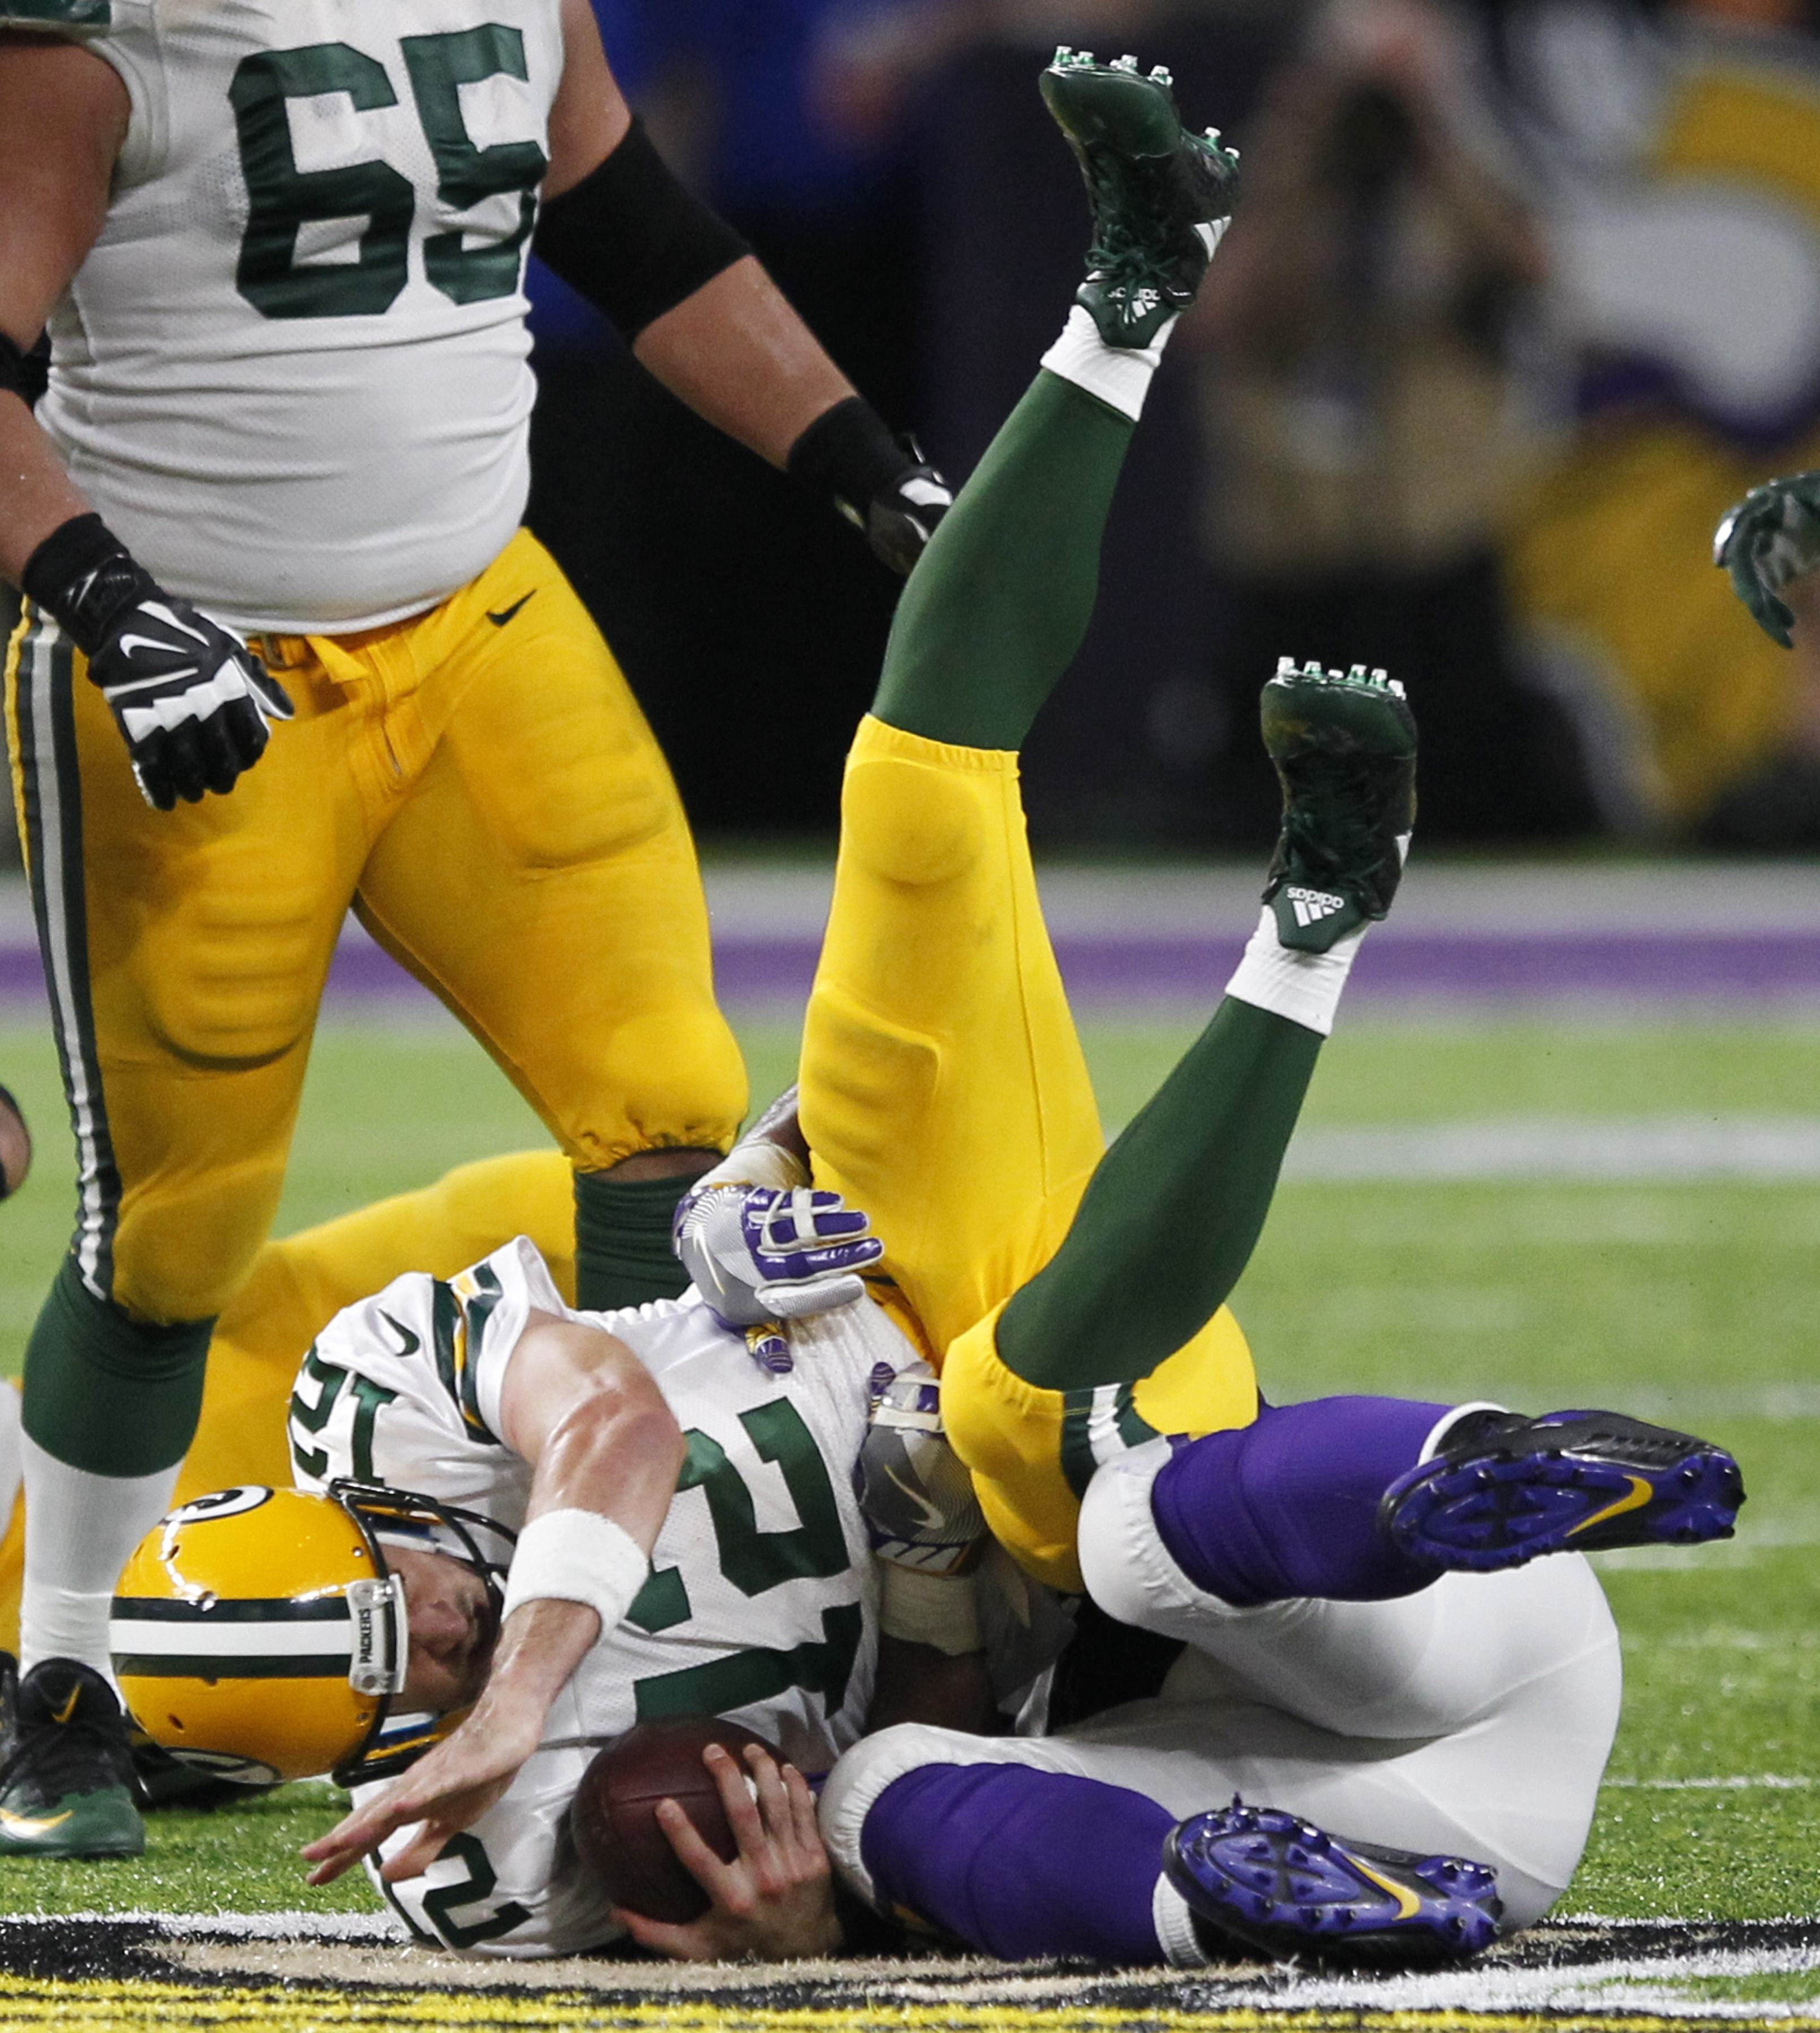 Green Bay Packers quarterback Aaron Rodgers (12) is sacked by Minnesota Vikings defensive tackle Tom Johnson, right, during the second half of an NFL football game Sunday, Sept. 18, 2016, in Minneapolis. The Vikings won 17-14. (AP Photo/Andy Clayton-King)